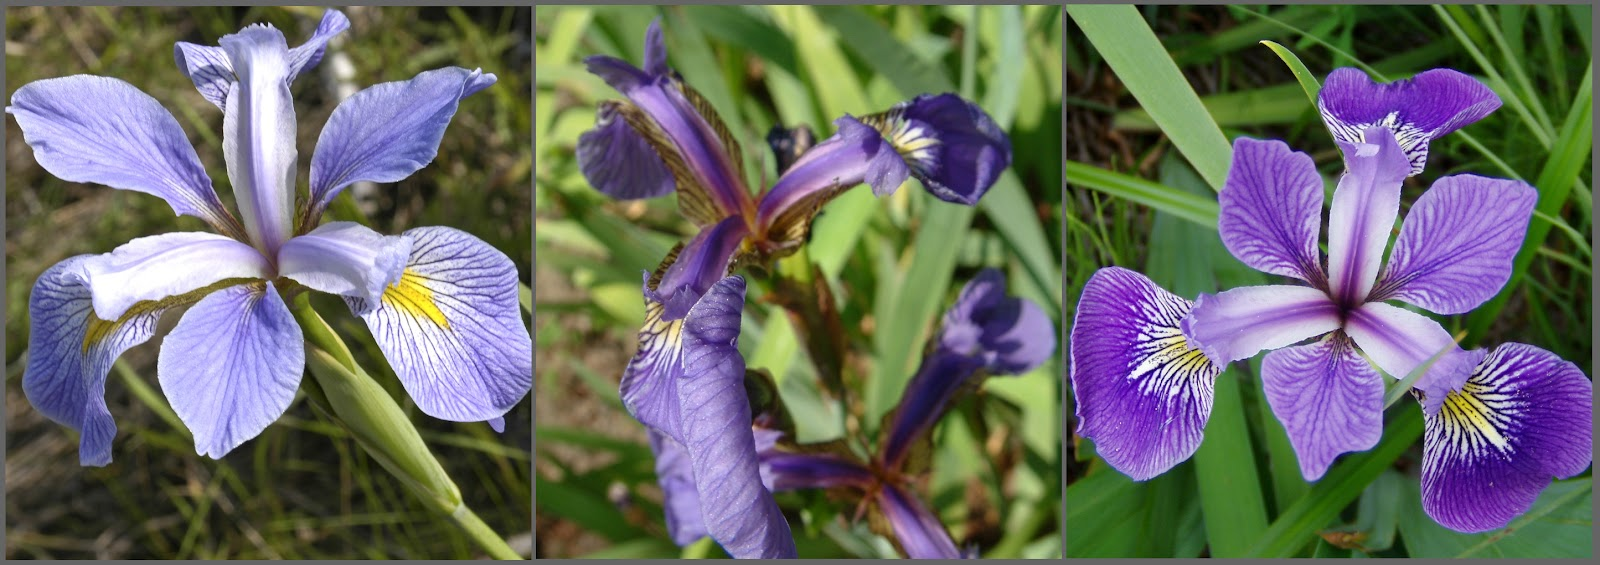 Supervised learning can identify irises. (Iris virginica image by Frank Mayfield)